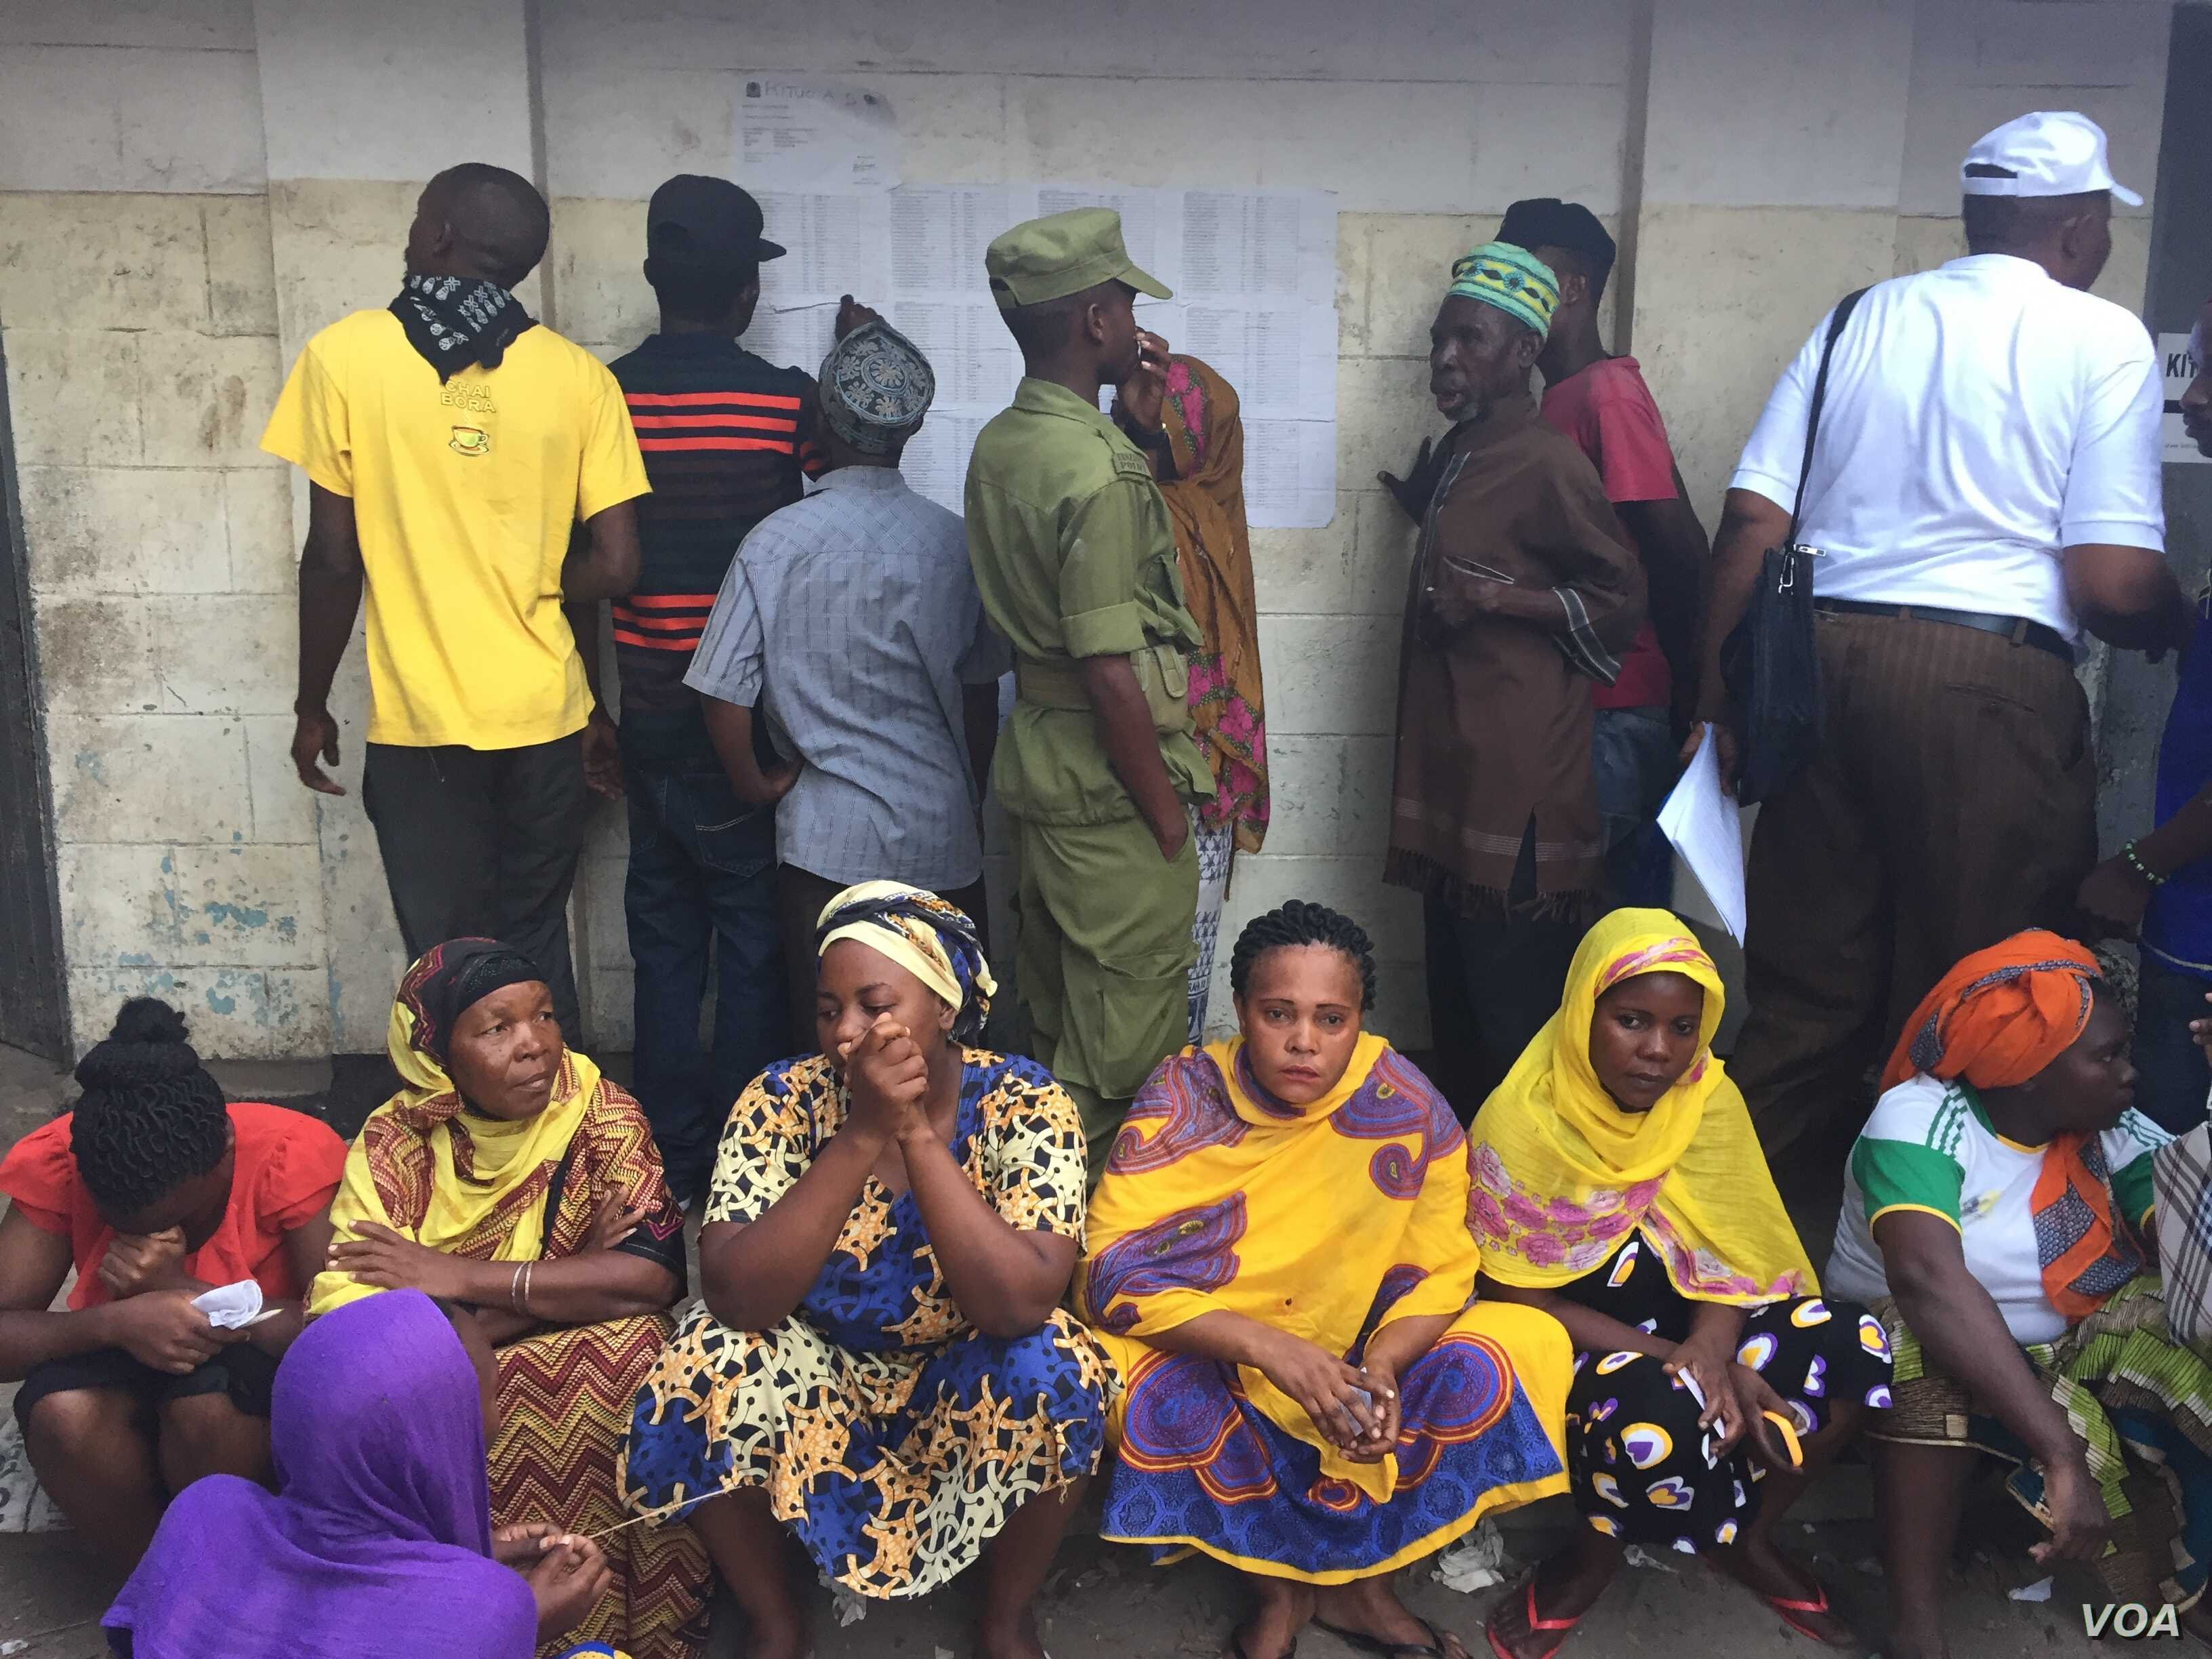 Tanzanians wait before the polls open for their turn to vote in the general election, Kinondoni, Dar es Salaam, Tanzania, Oct. 25, 2015.